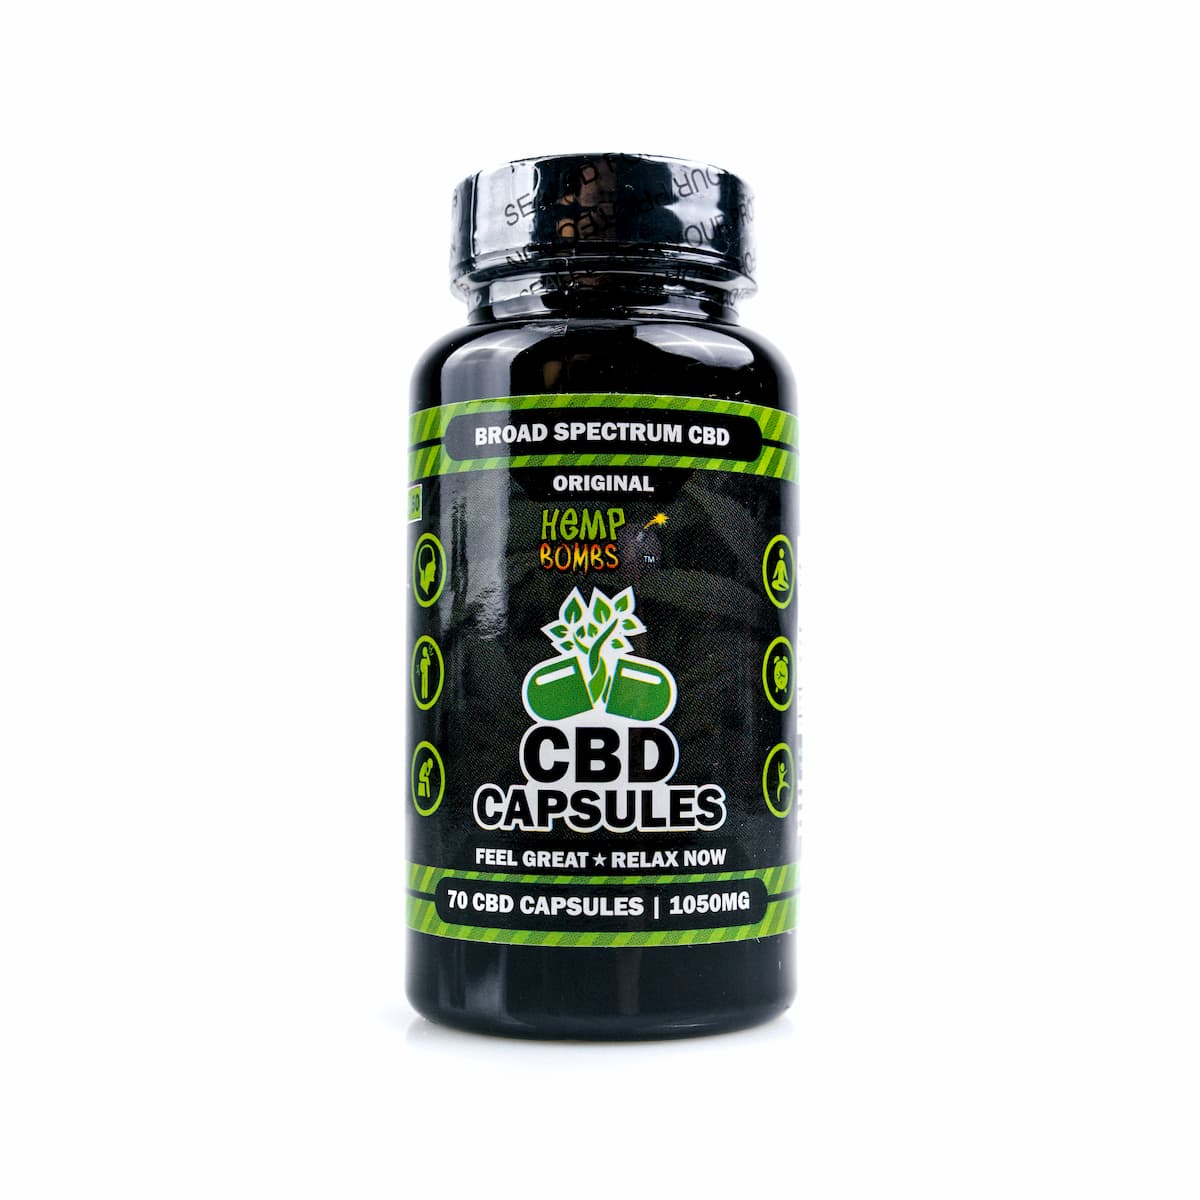 Hemp Bombs, CBD Capsules, Full Spectrum, 70 Capsules, 1050mg of CBD